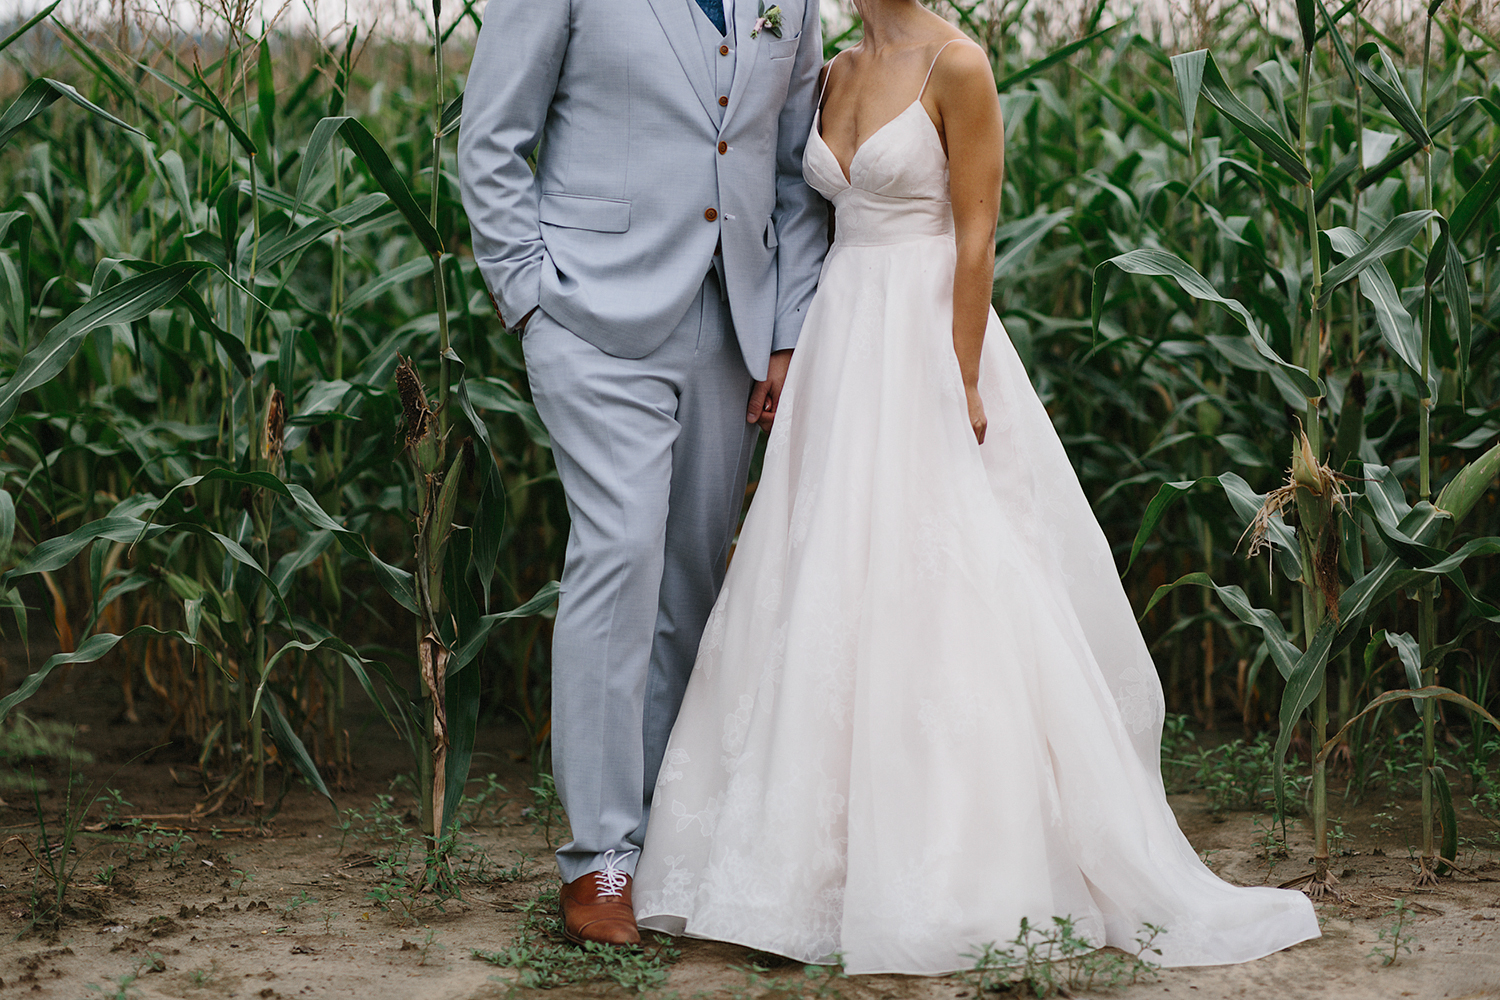 Best-Toronto-Wedding-Photographers-Photojournalistic-Wedding-Photography-in-Toronto-Ryanne-Hollies-Photography-candid-documentary-bradford-family-farm-rustic-venue-inspiration-bride-and-groom-portraits-in-corn-field.jpg